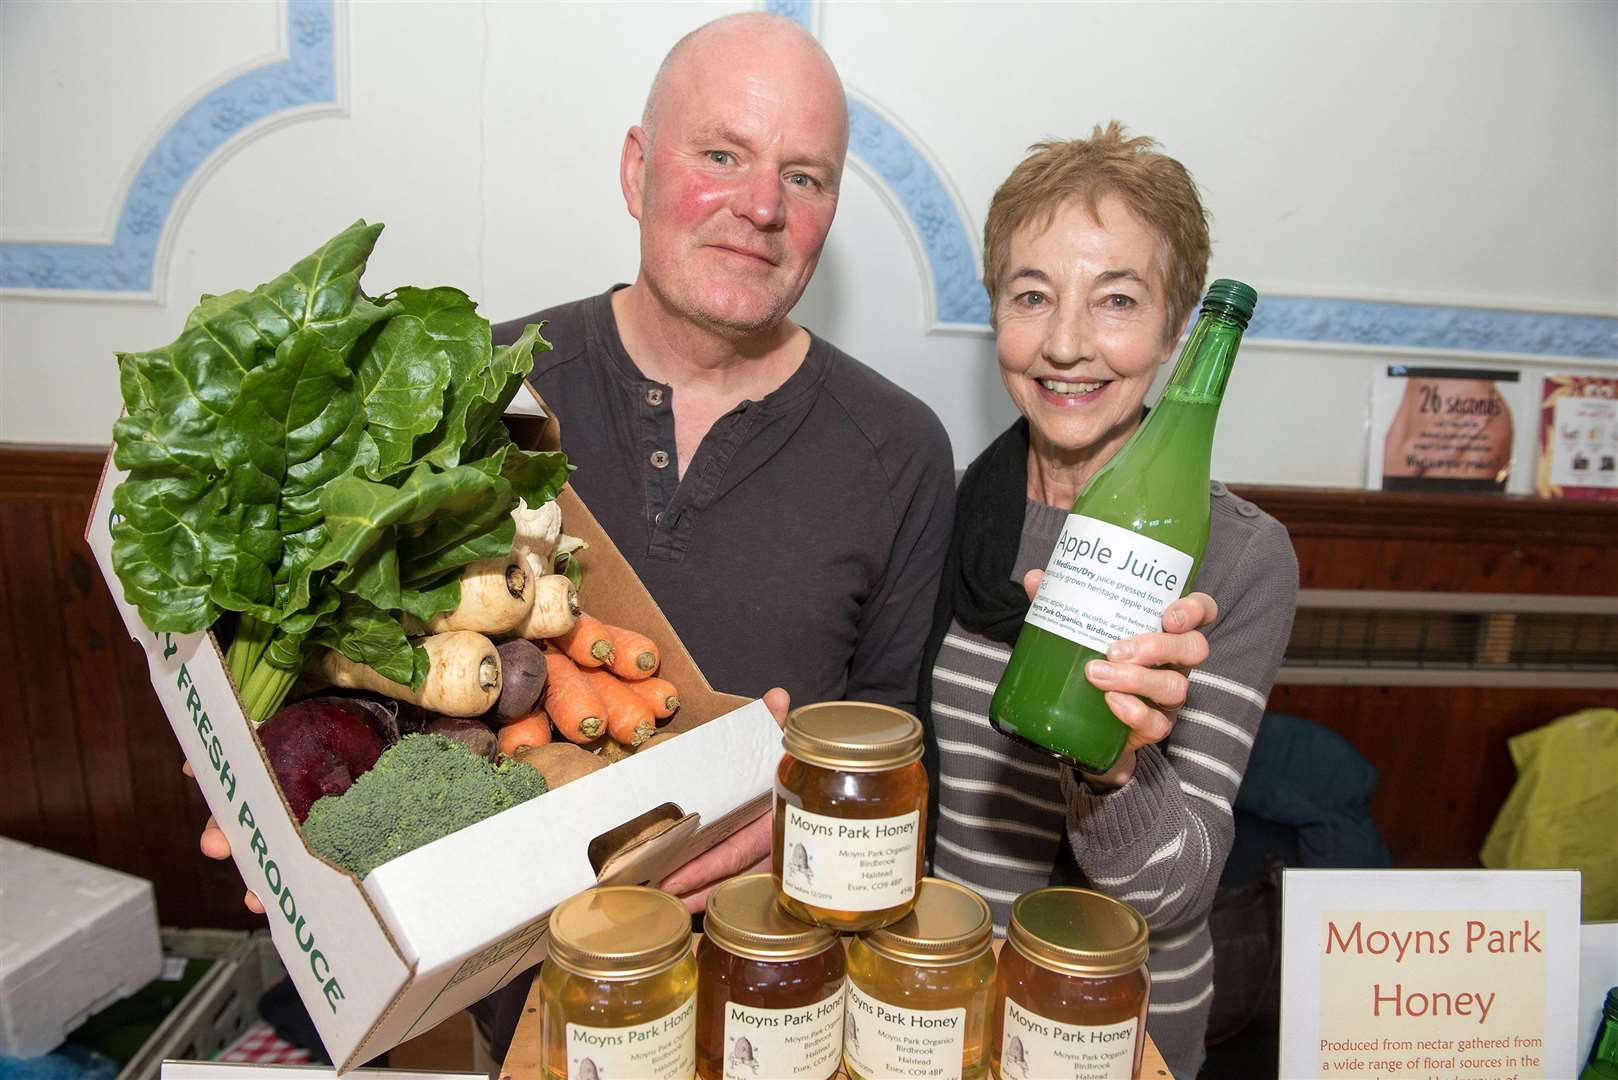 CLARE - FESTIVAL.Clare Town Hall, Market Hill, Clare.A healthy living festival is being staged in Clare in aid of a charity which tackles poverty in Haverhill. Moyns Park Organics Phillip and Jennifer Mizen Picture Mark Westley. (5476777)